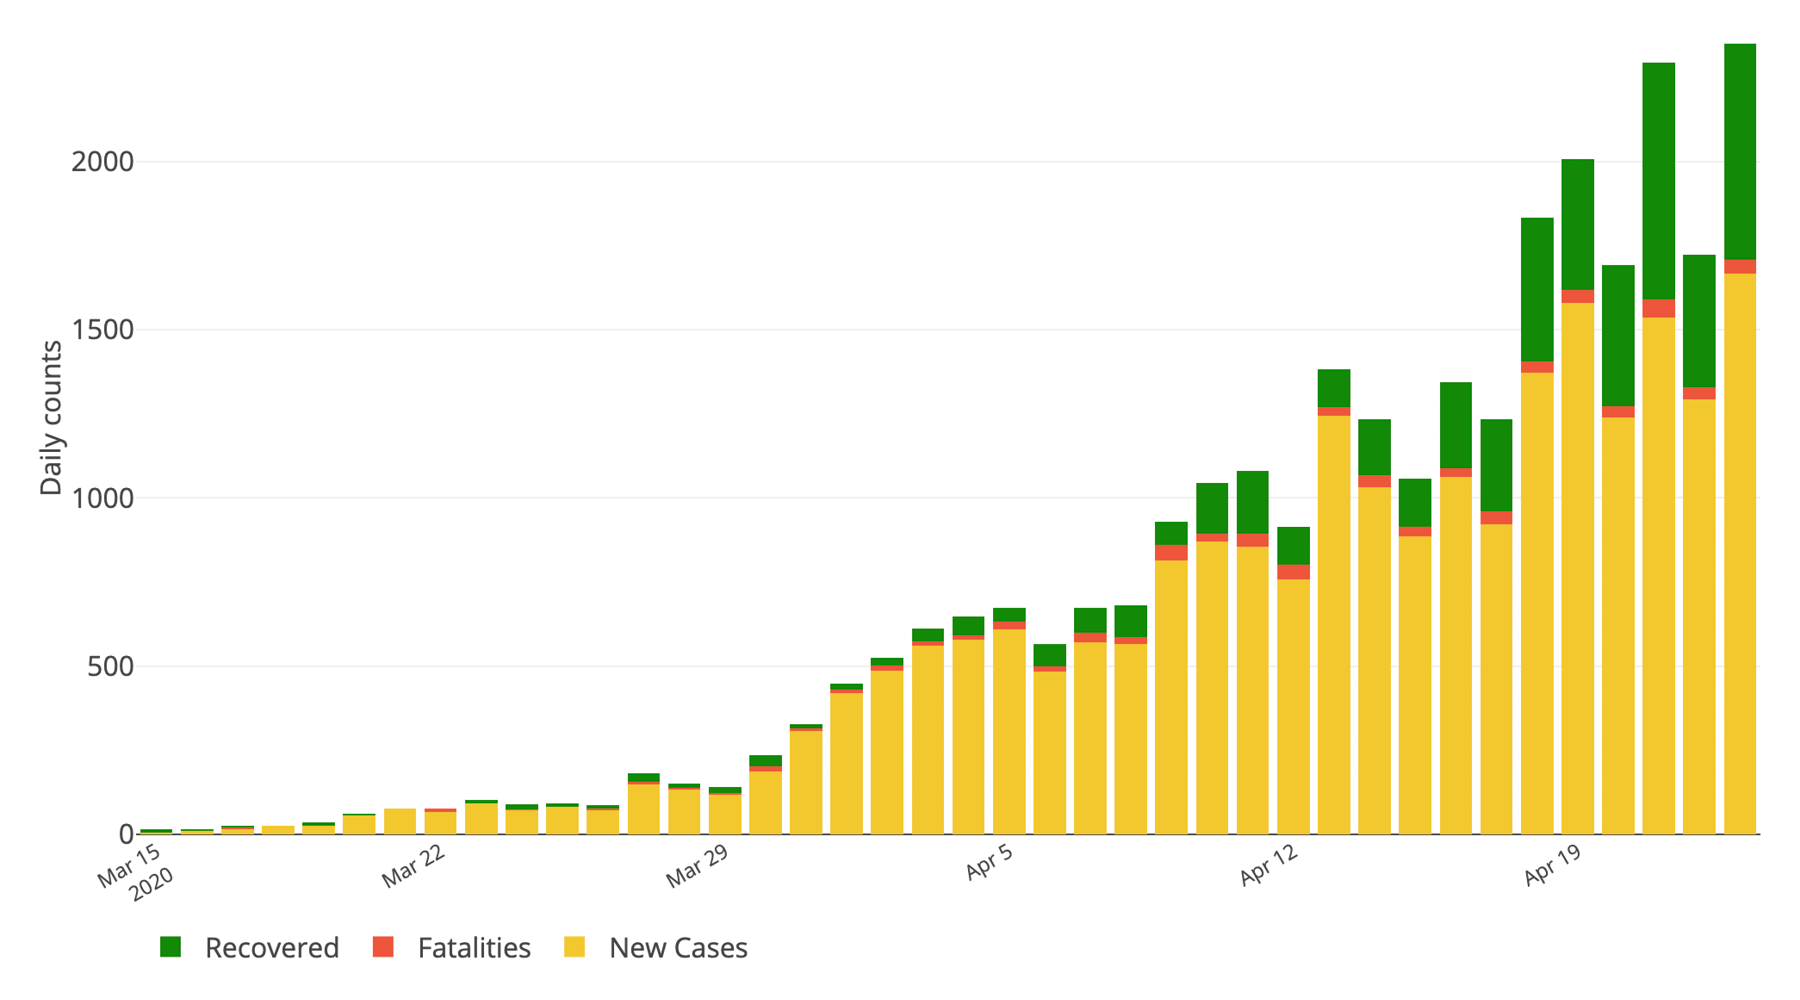 A graph from the COV-IND-19 team's web dashboard showing rising COVID-19 cases in India from March 15 through April 23.